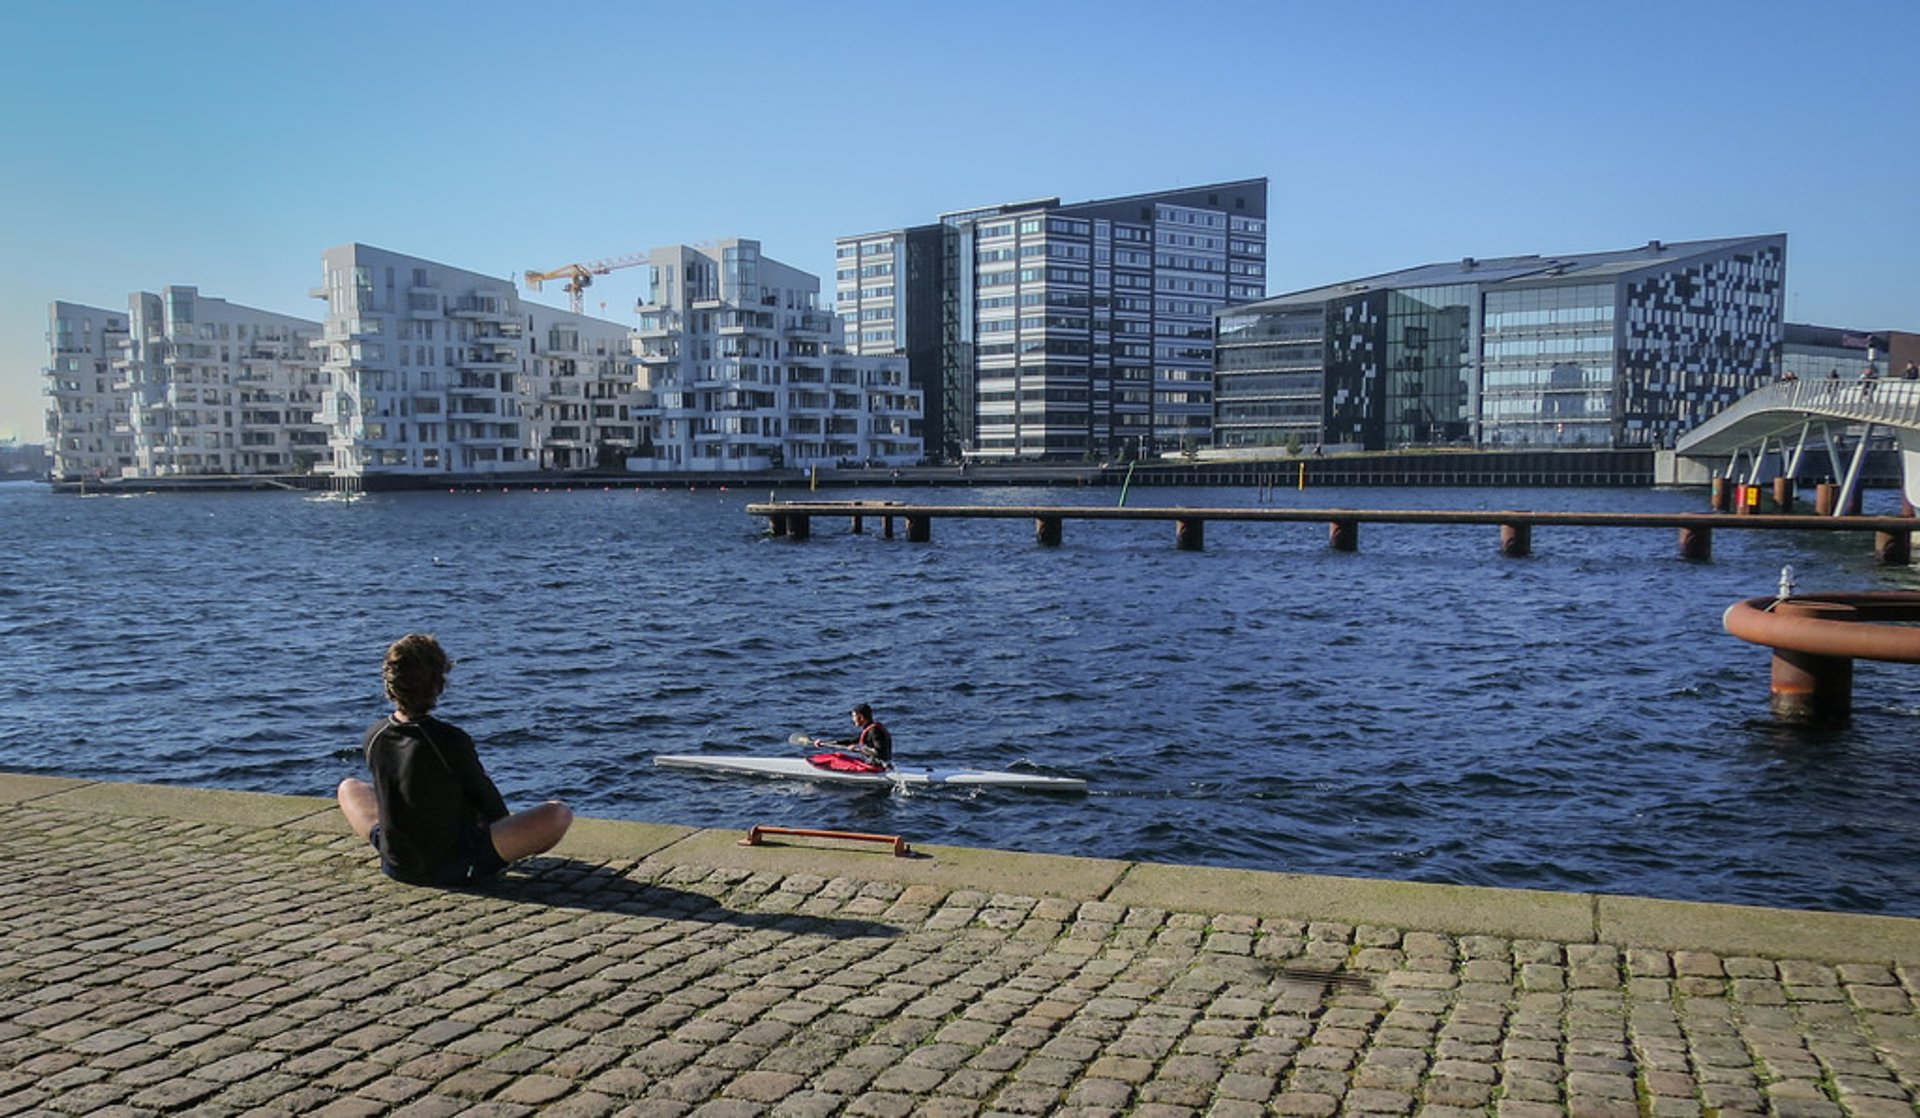 Kayaking in Copenhagen - Best Season